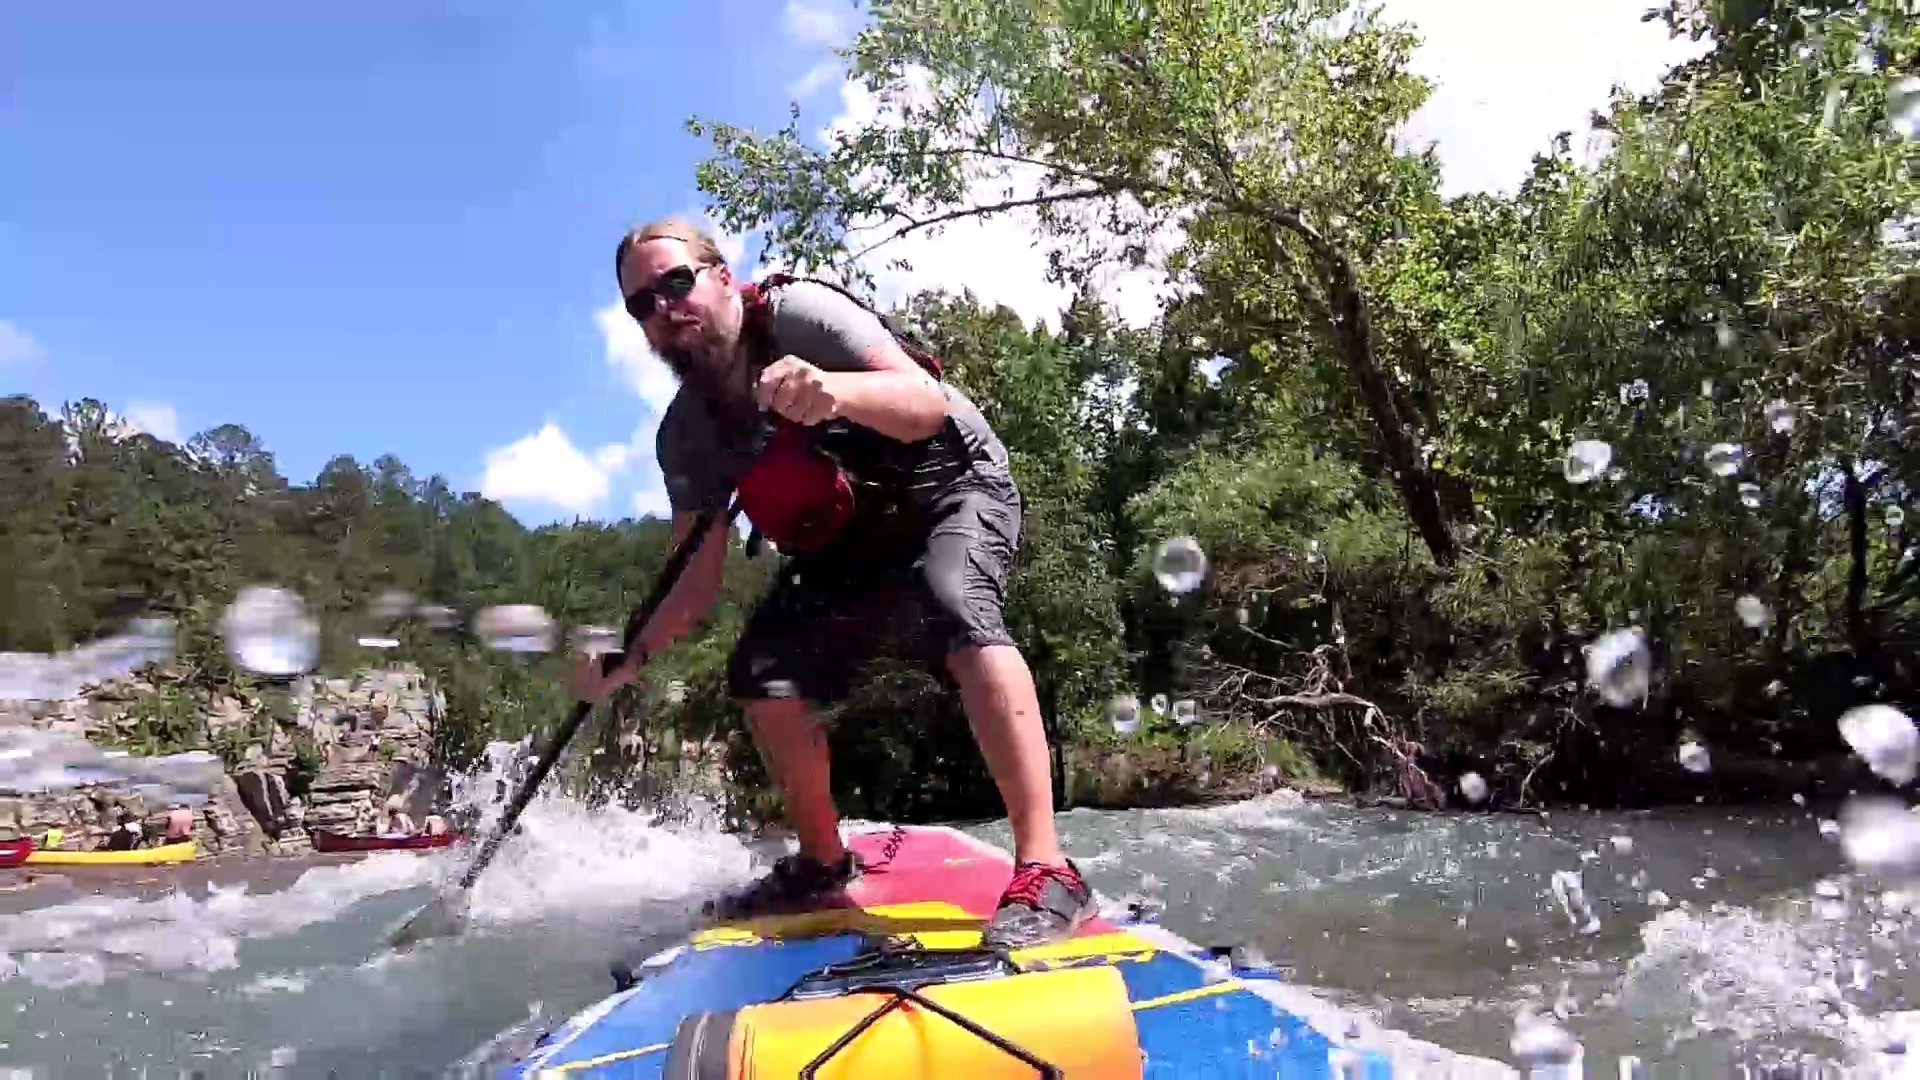 Buffalo River SUP-ing & Wipeouts 6-29-19 [ HD VIDEO ]